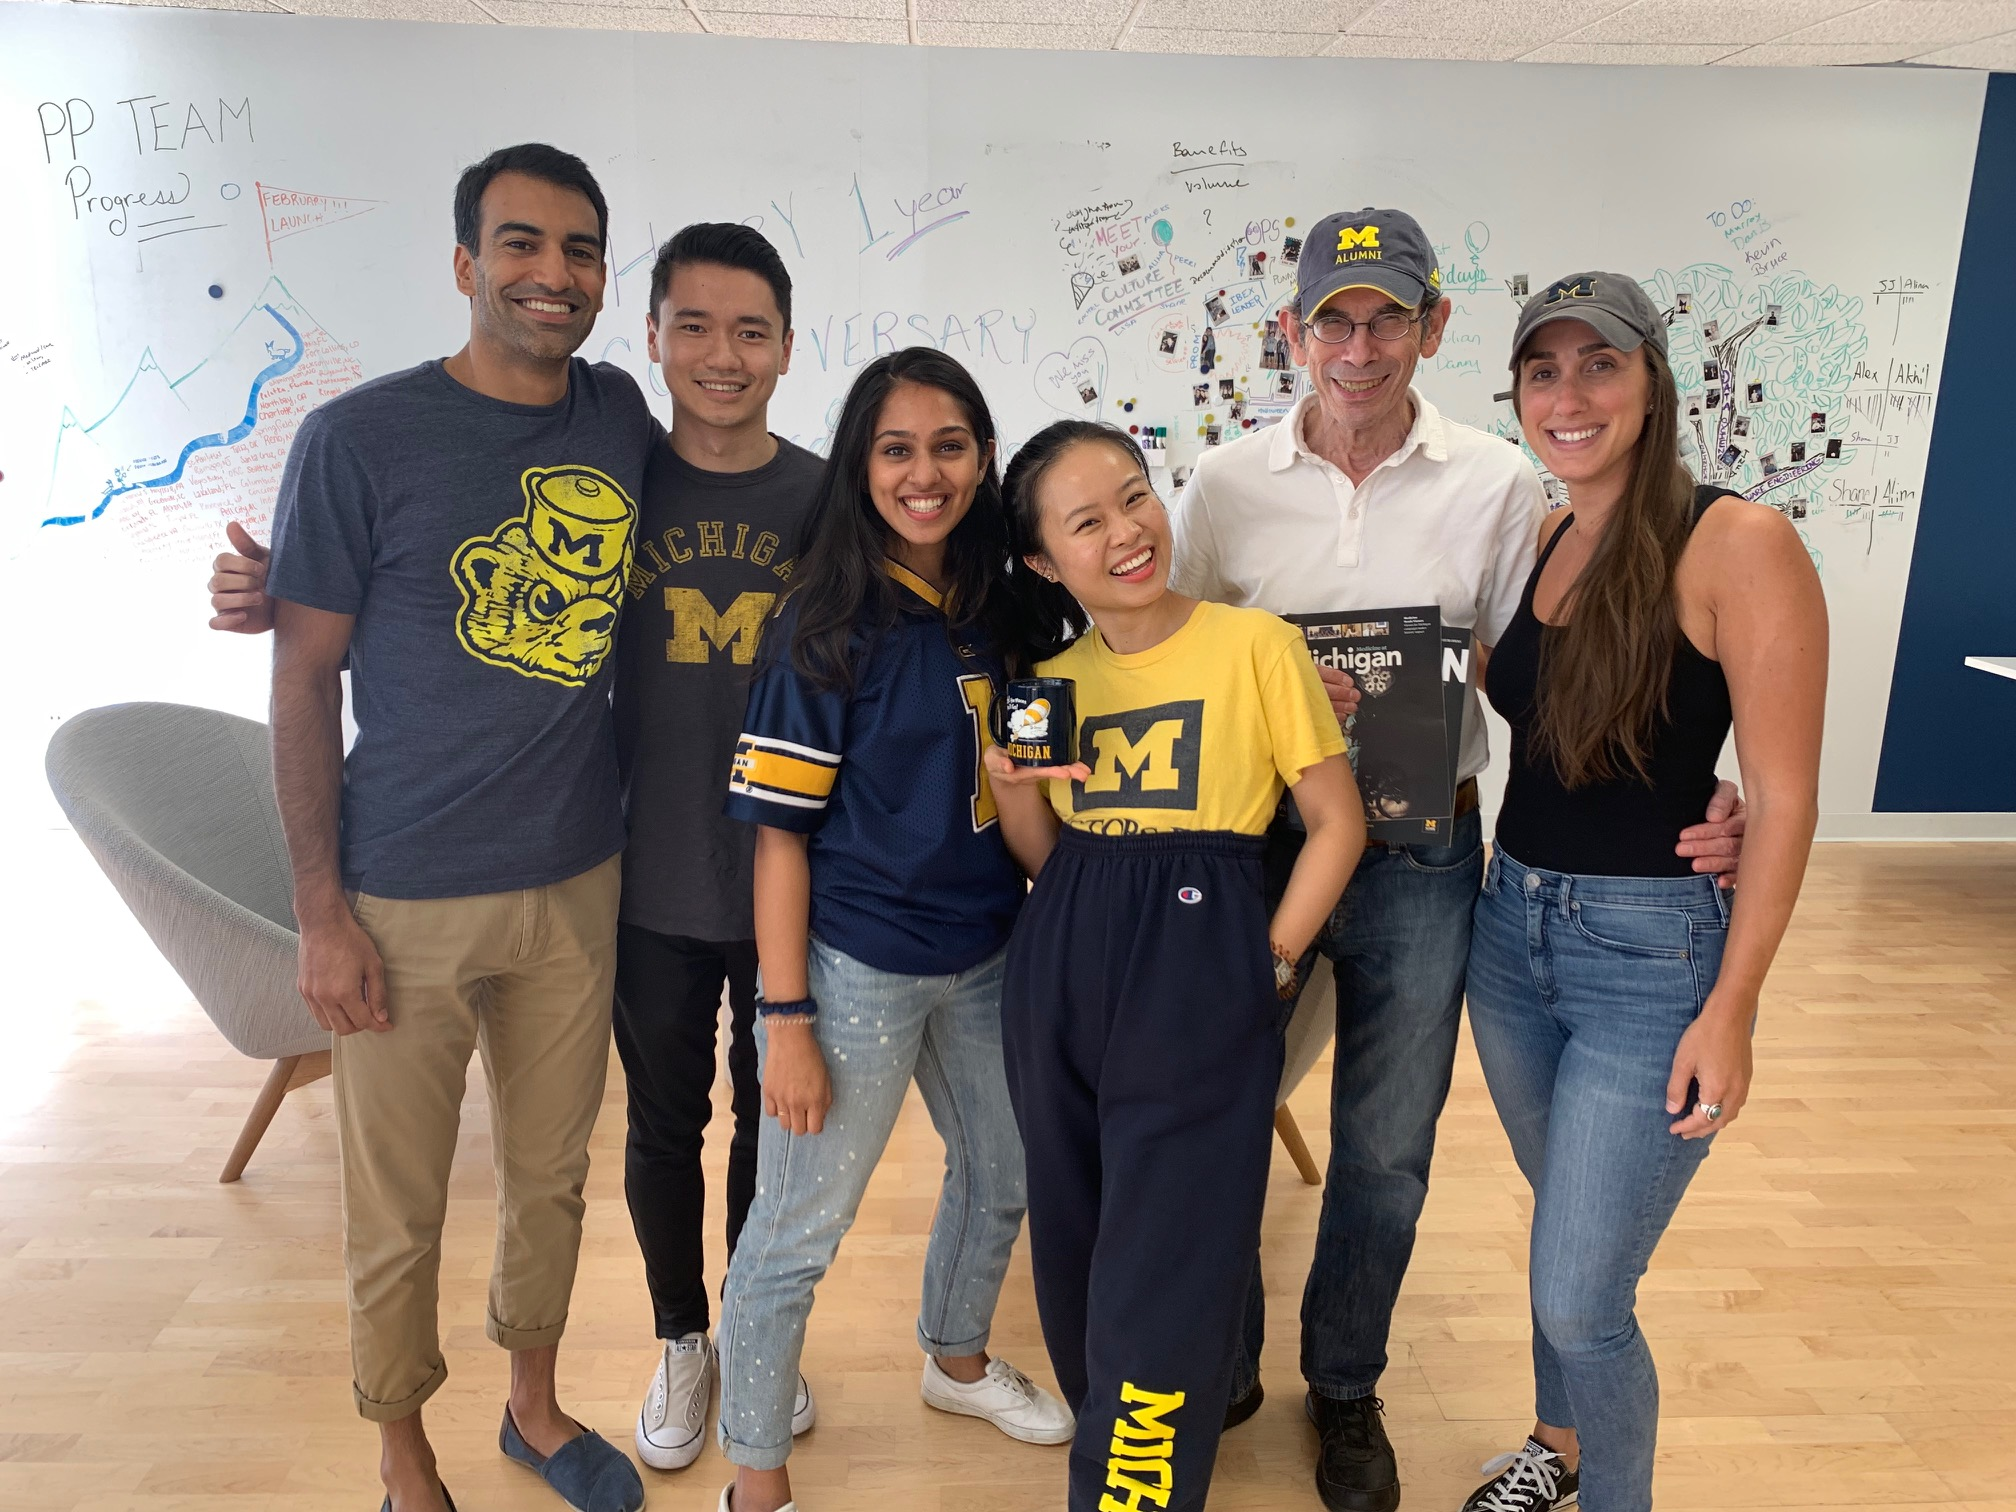 Colleagues at Covera Health, a New York City start-up health care firm, celebrated the beginning of football season with a group photo. From left to right are: Akhil Shah, '09, MHSA'12; Andrew Li, '15; Sahithi Akasapu, '17; Rachel Liang, '17; Richard Herzog, '67, MD'71; and Alyssa Glasser, a University of Massachusetts alumna who got into the spirit of the proceedings.